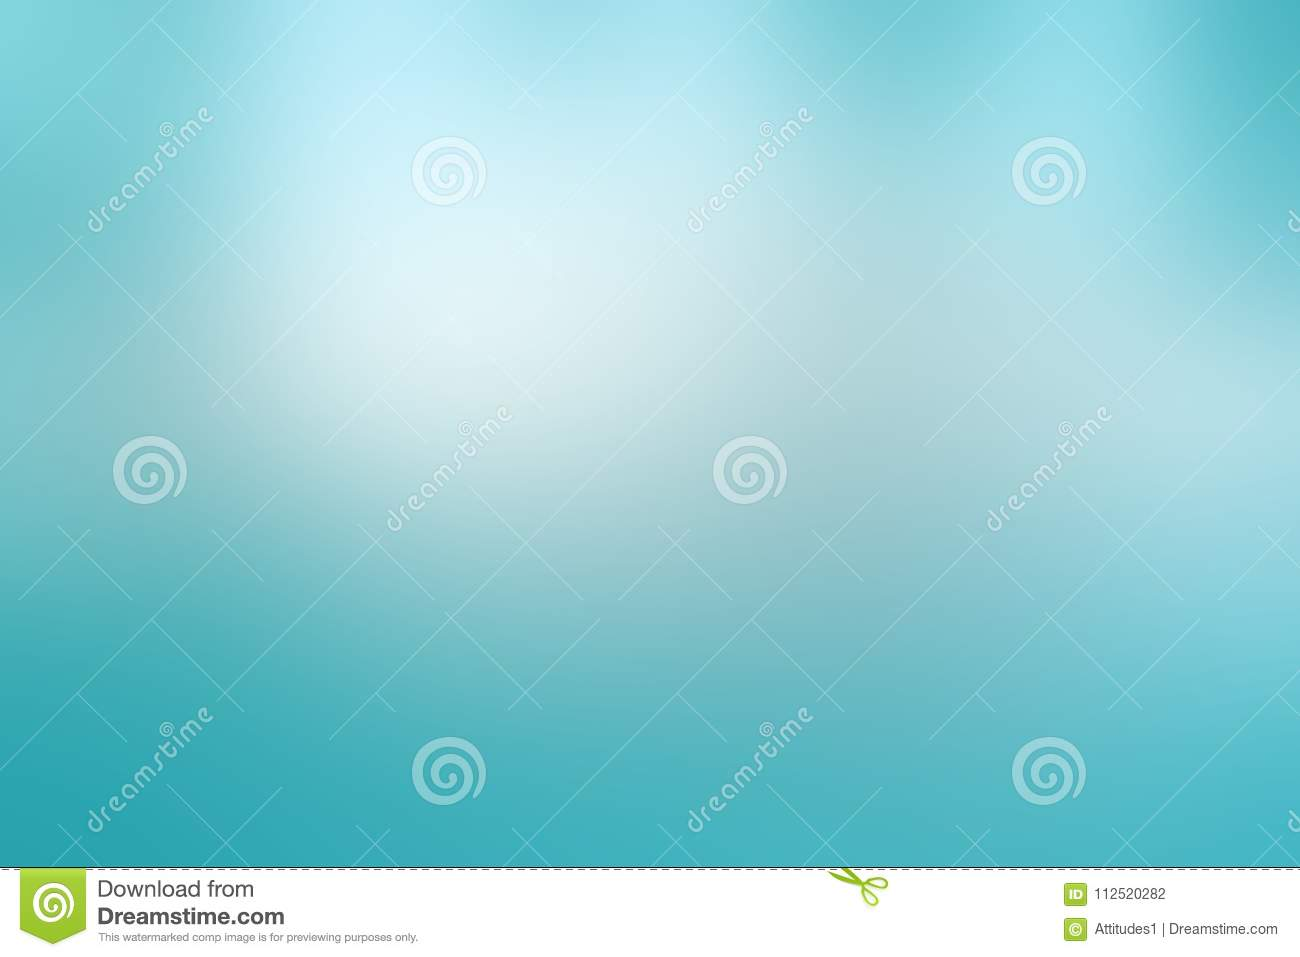 Light sky blue background in pastel spring or Easter colors with cloudy white blurred spots in clean fresh design